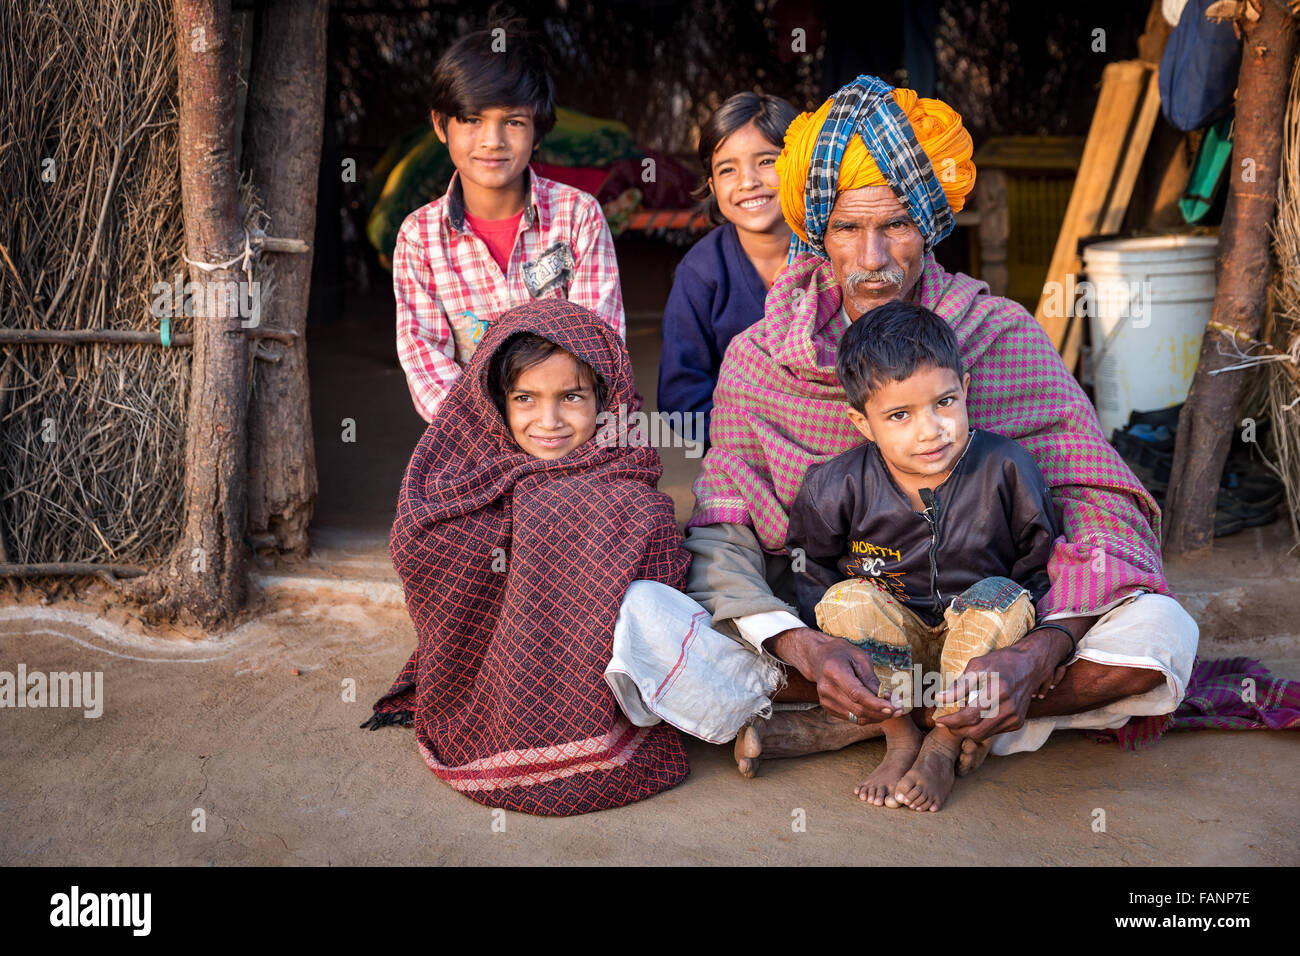 Poor Indian family in front of their house, Pushkar, Rajasthan, India - Stock Image